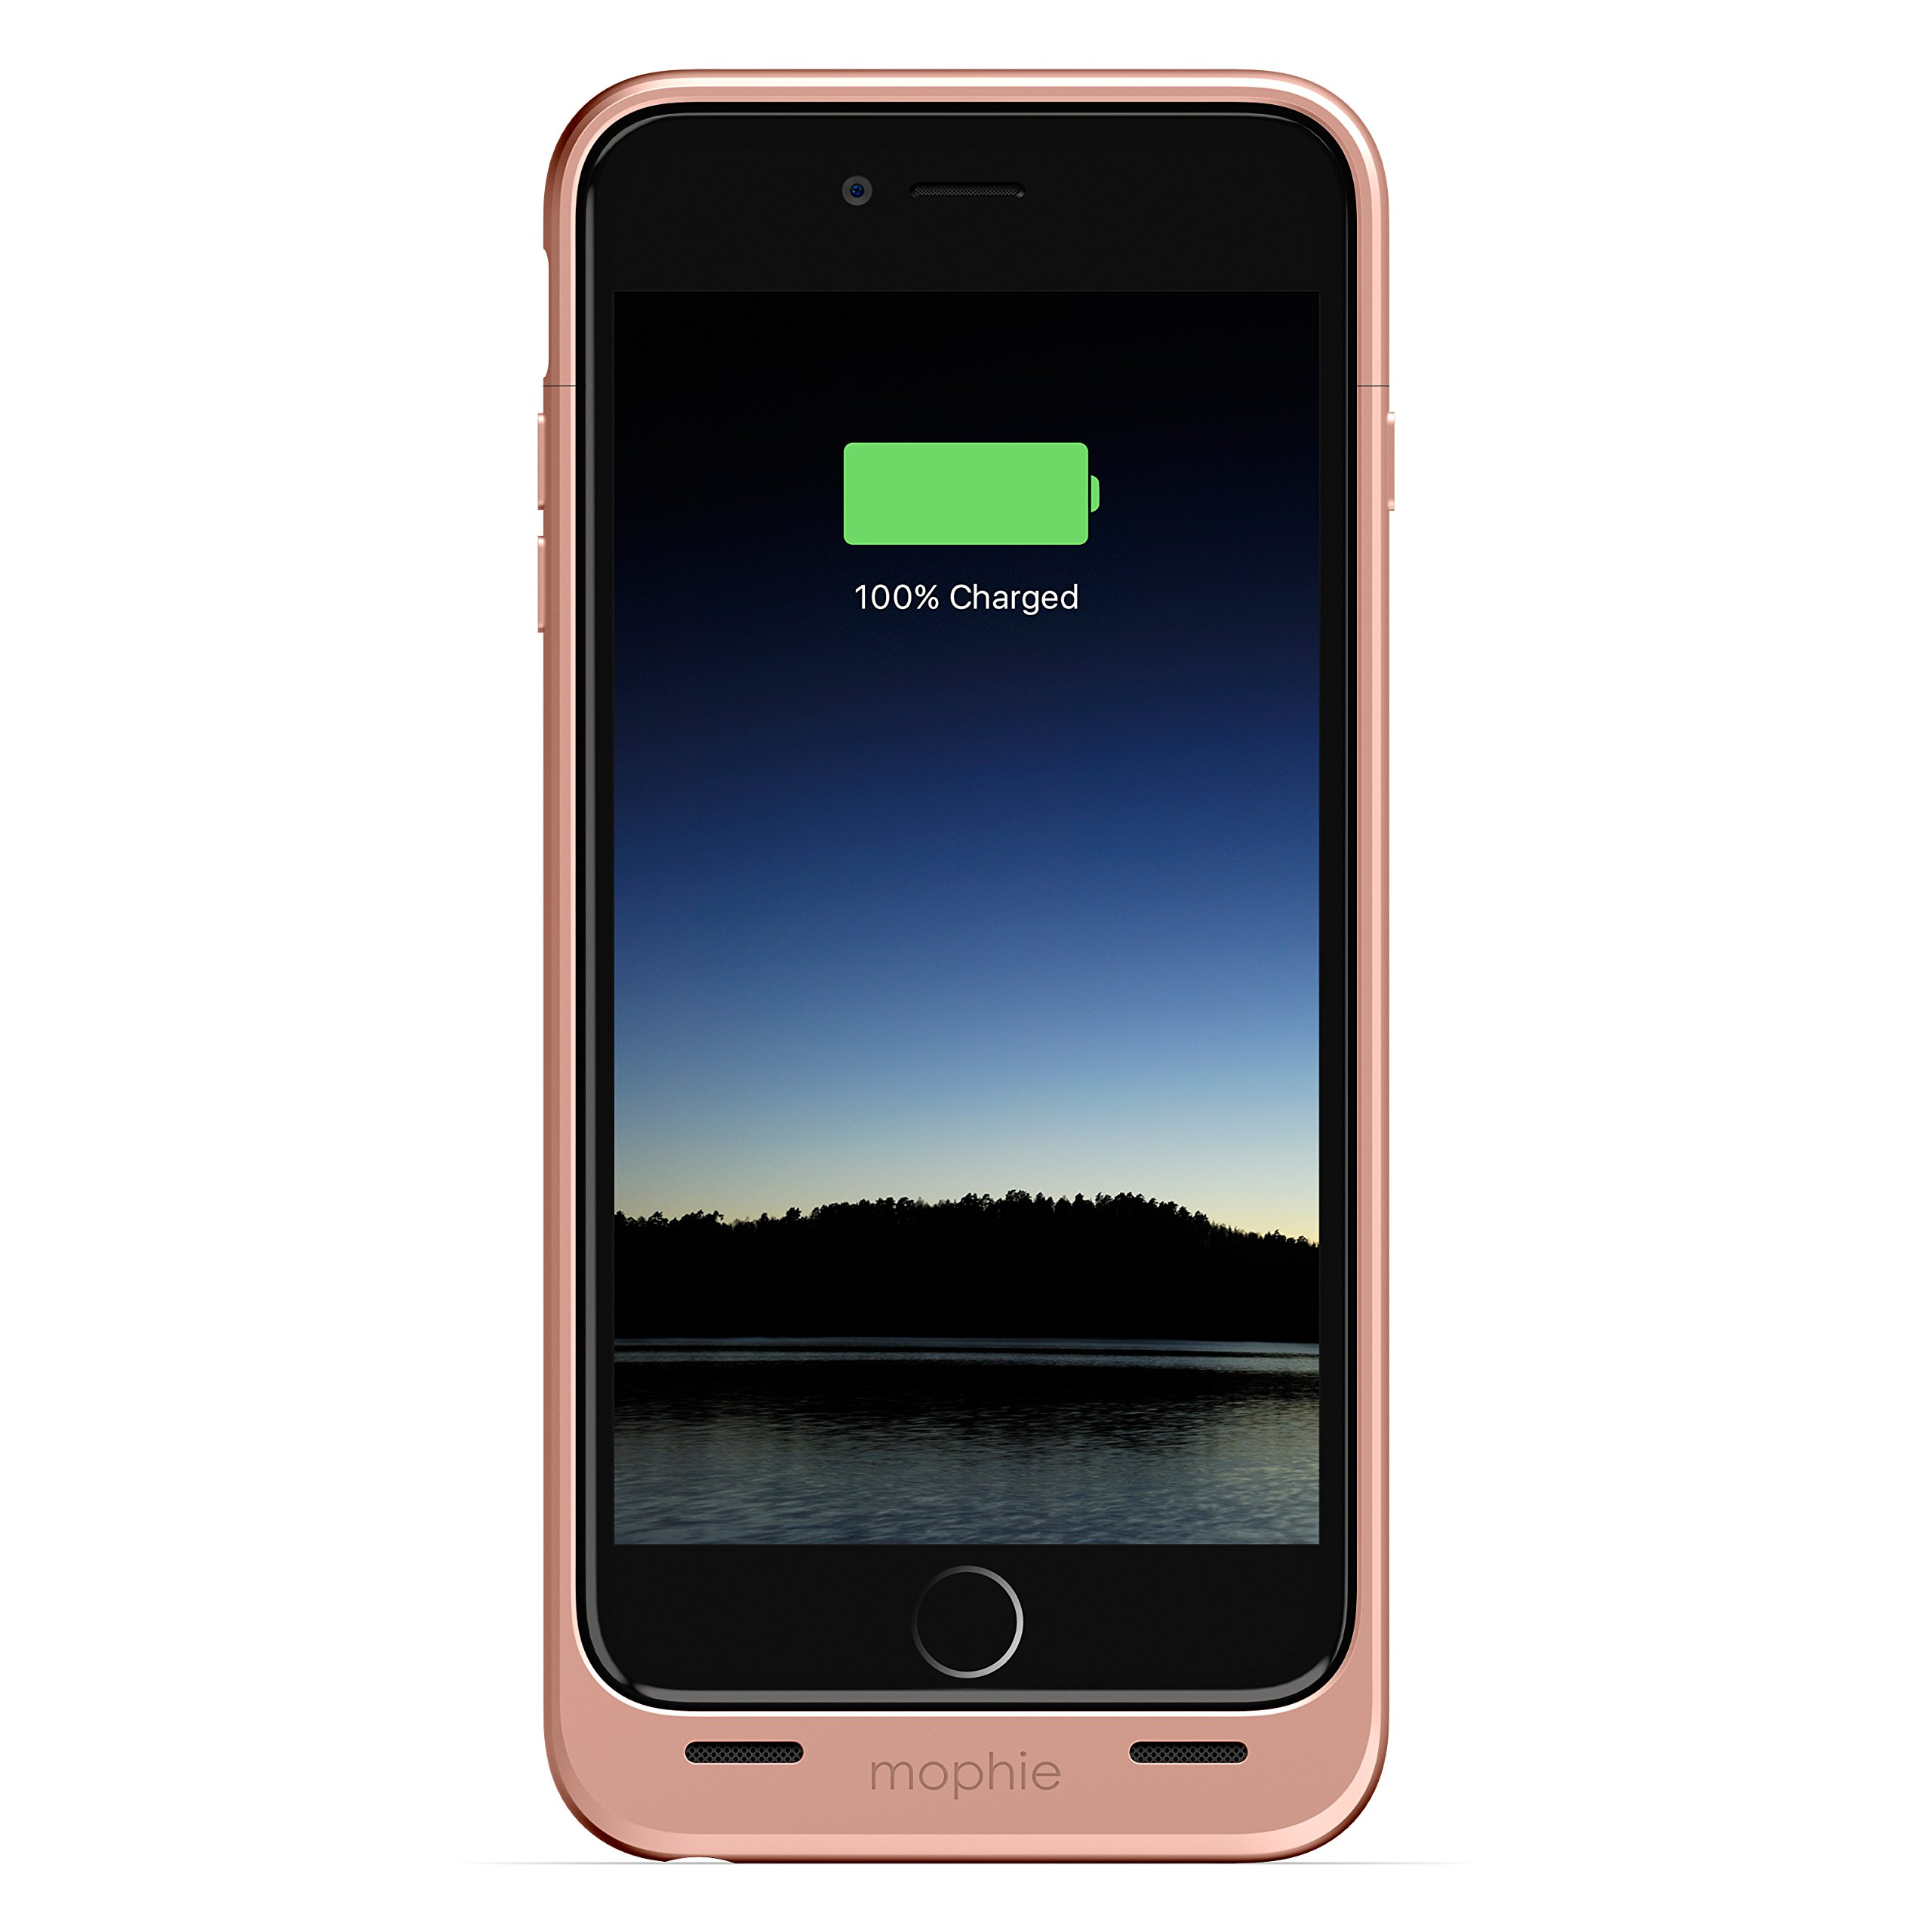 mophie juice pack - Protective Battery Case for iPhone 6 Plus /6S Plus (2,600mAh) - Rose Gold by mophie